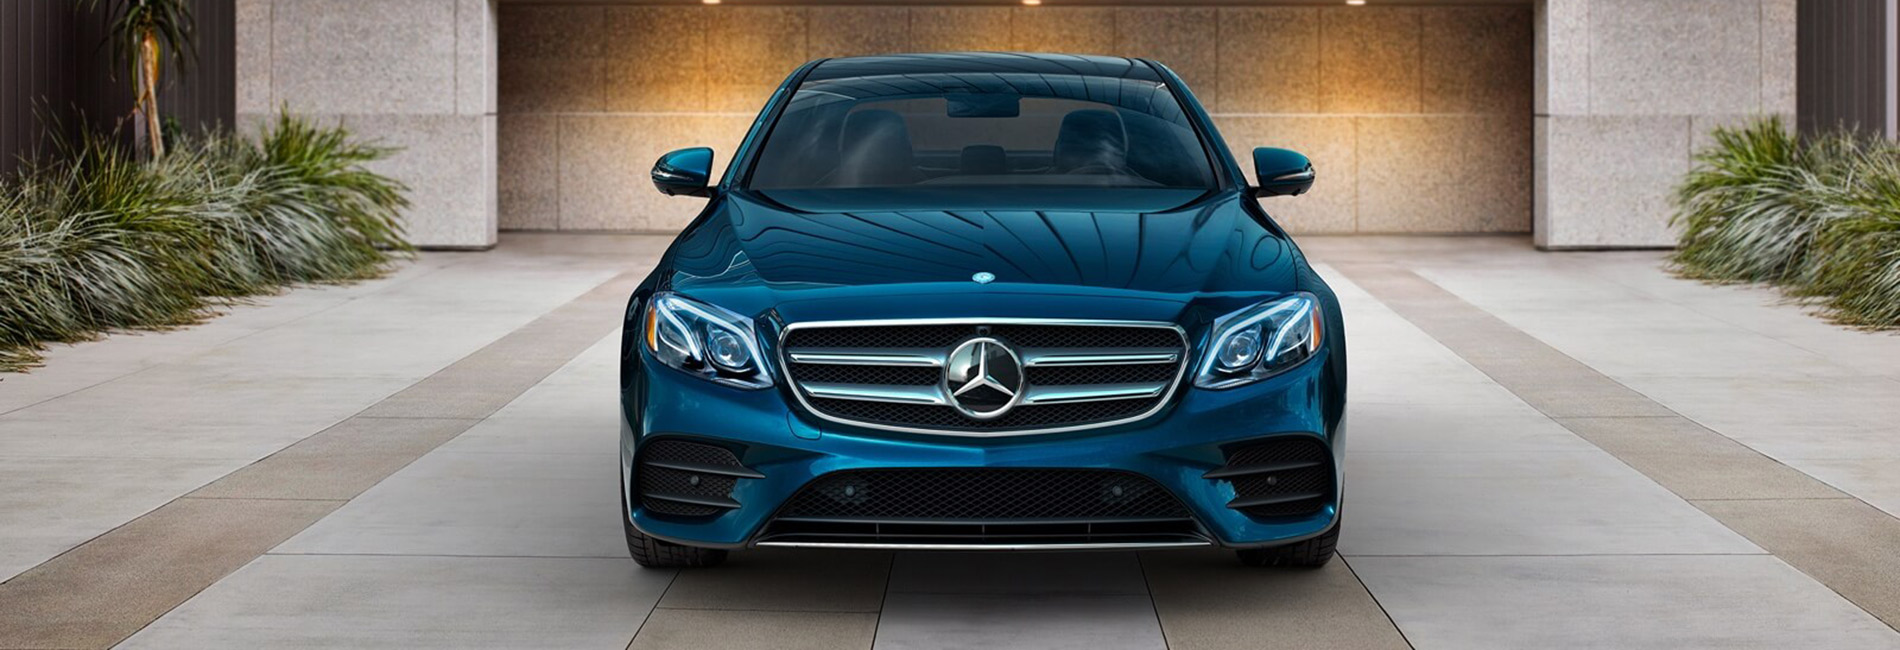 Discover certified pre owned mercedes benz edmonton west ltd for Mercedes benz buckhead preowned